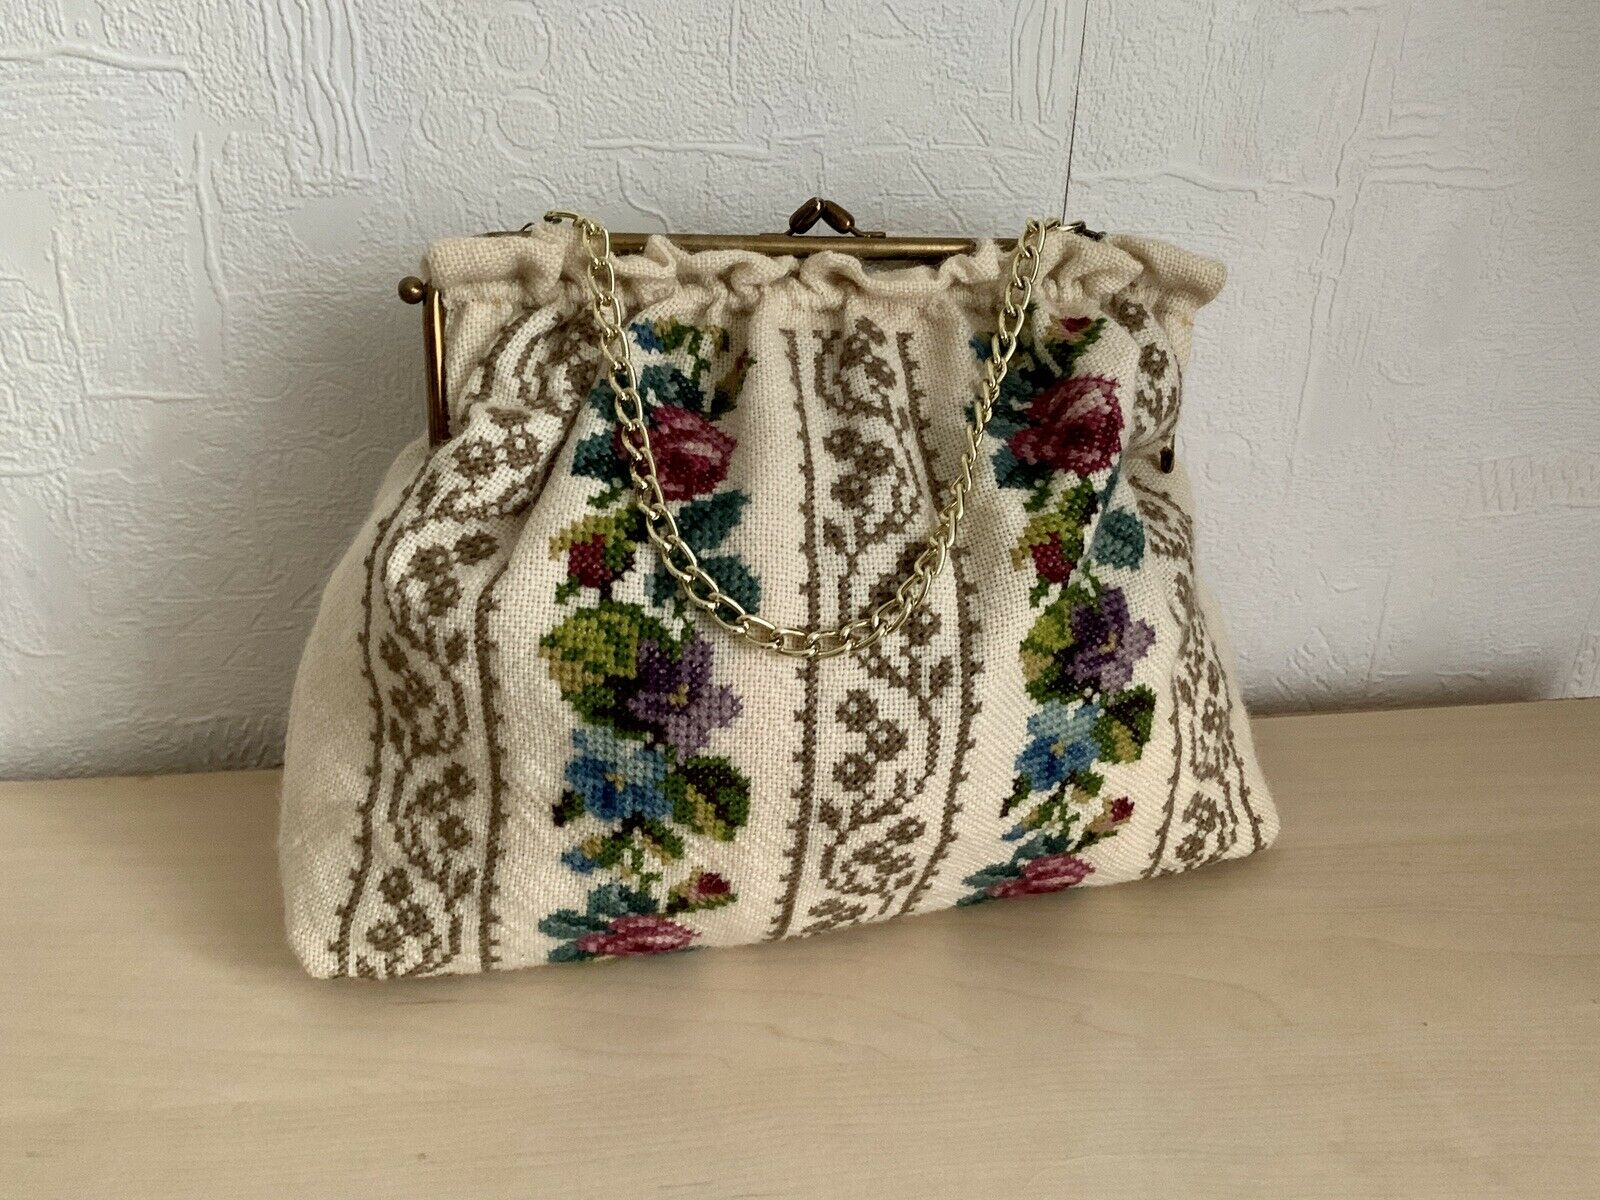 vintage handmade bag embroidery on a lining chain with a lock 9*13 inch